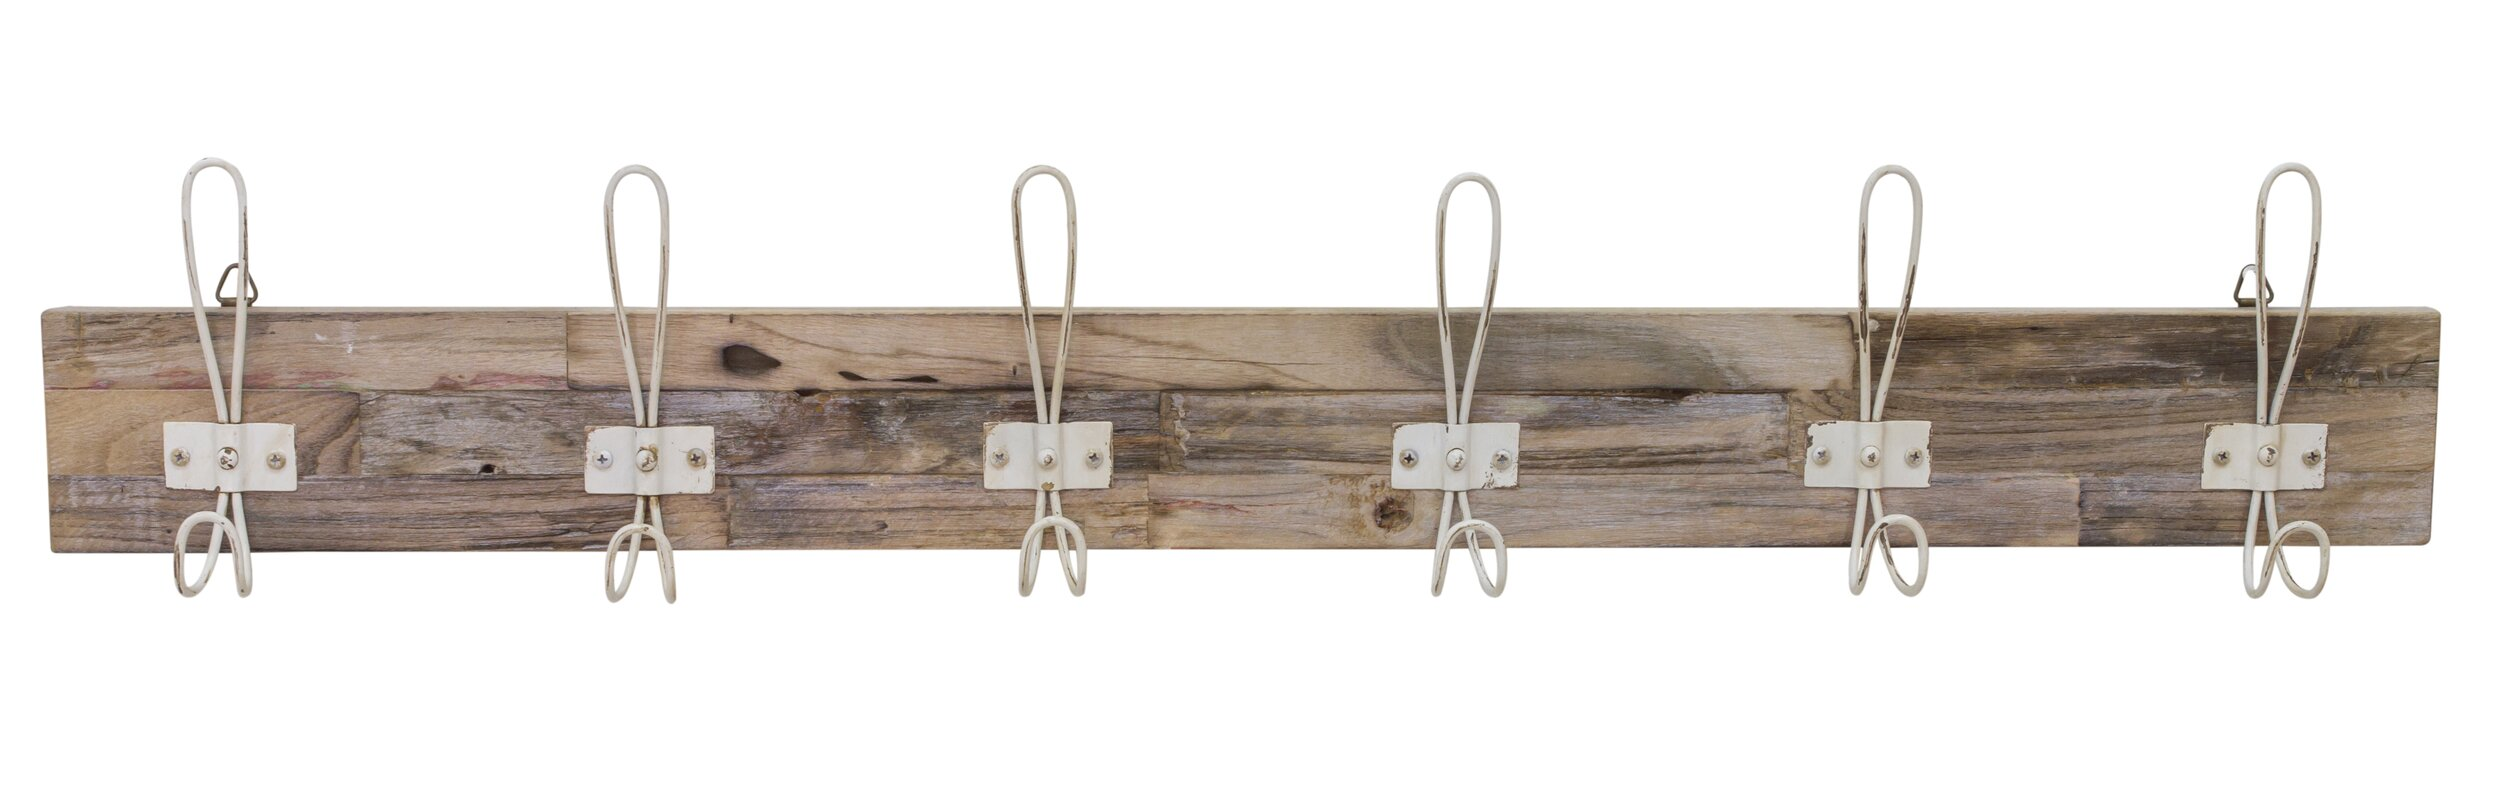 pot rectangular wood rack hanging with spagic kitchen fresh ceiling new lights of